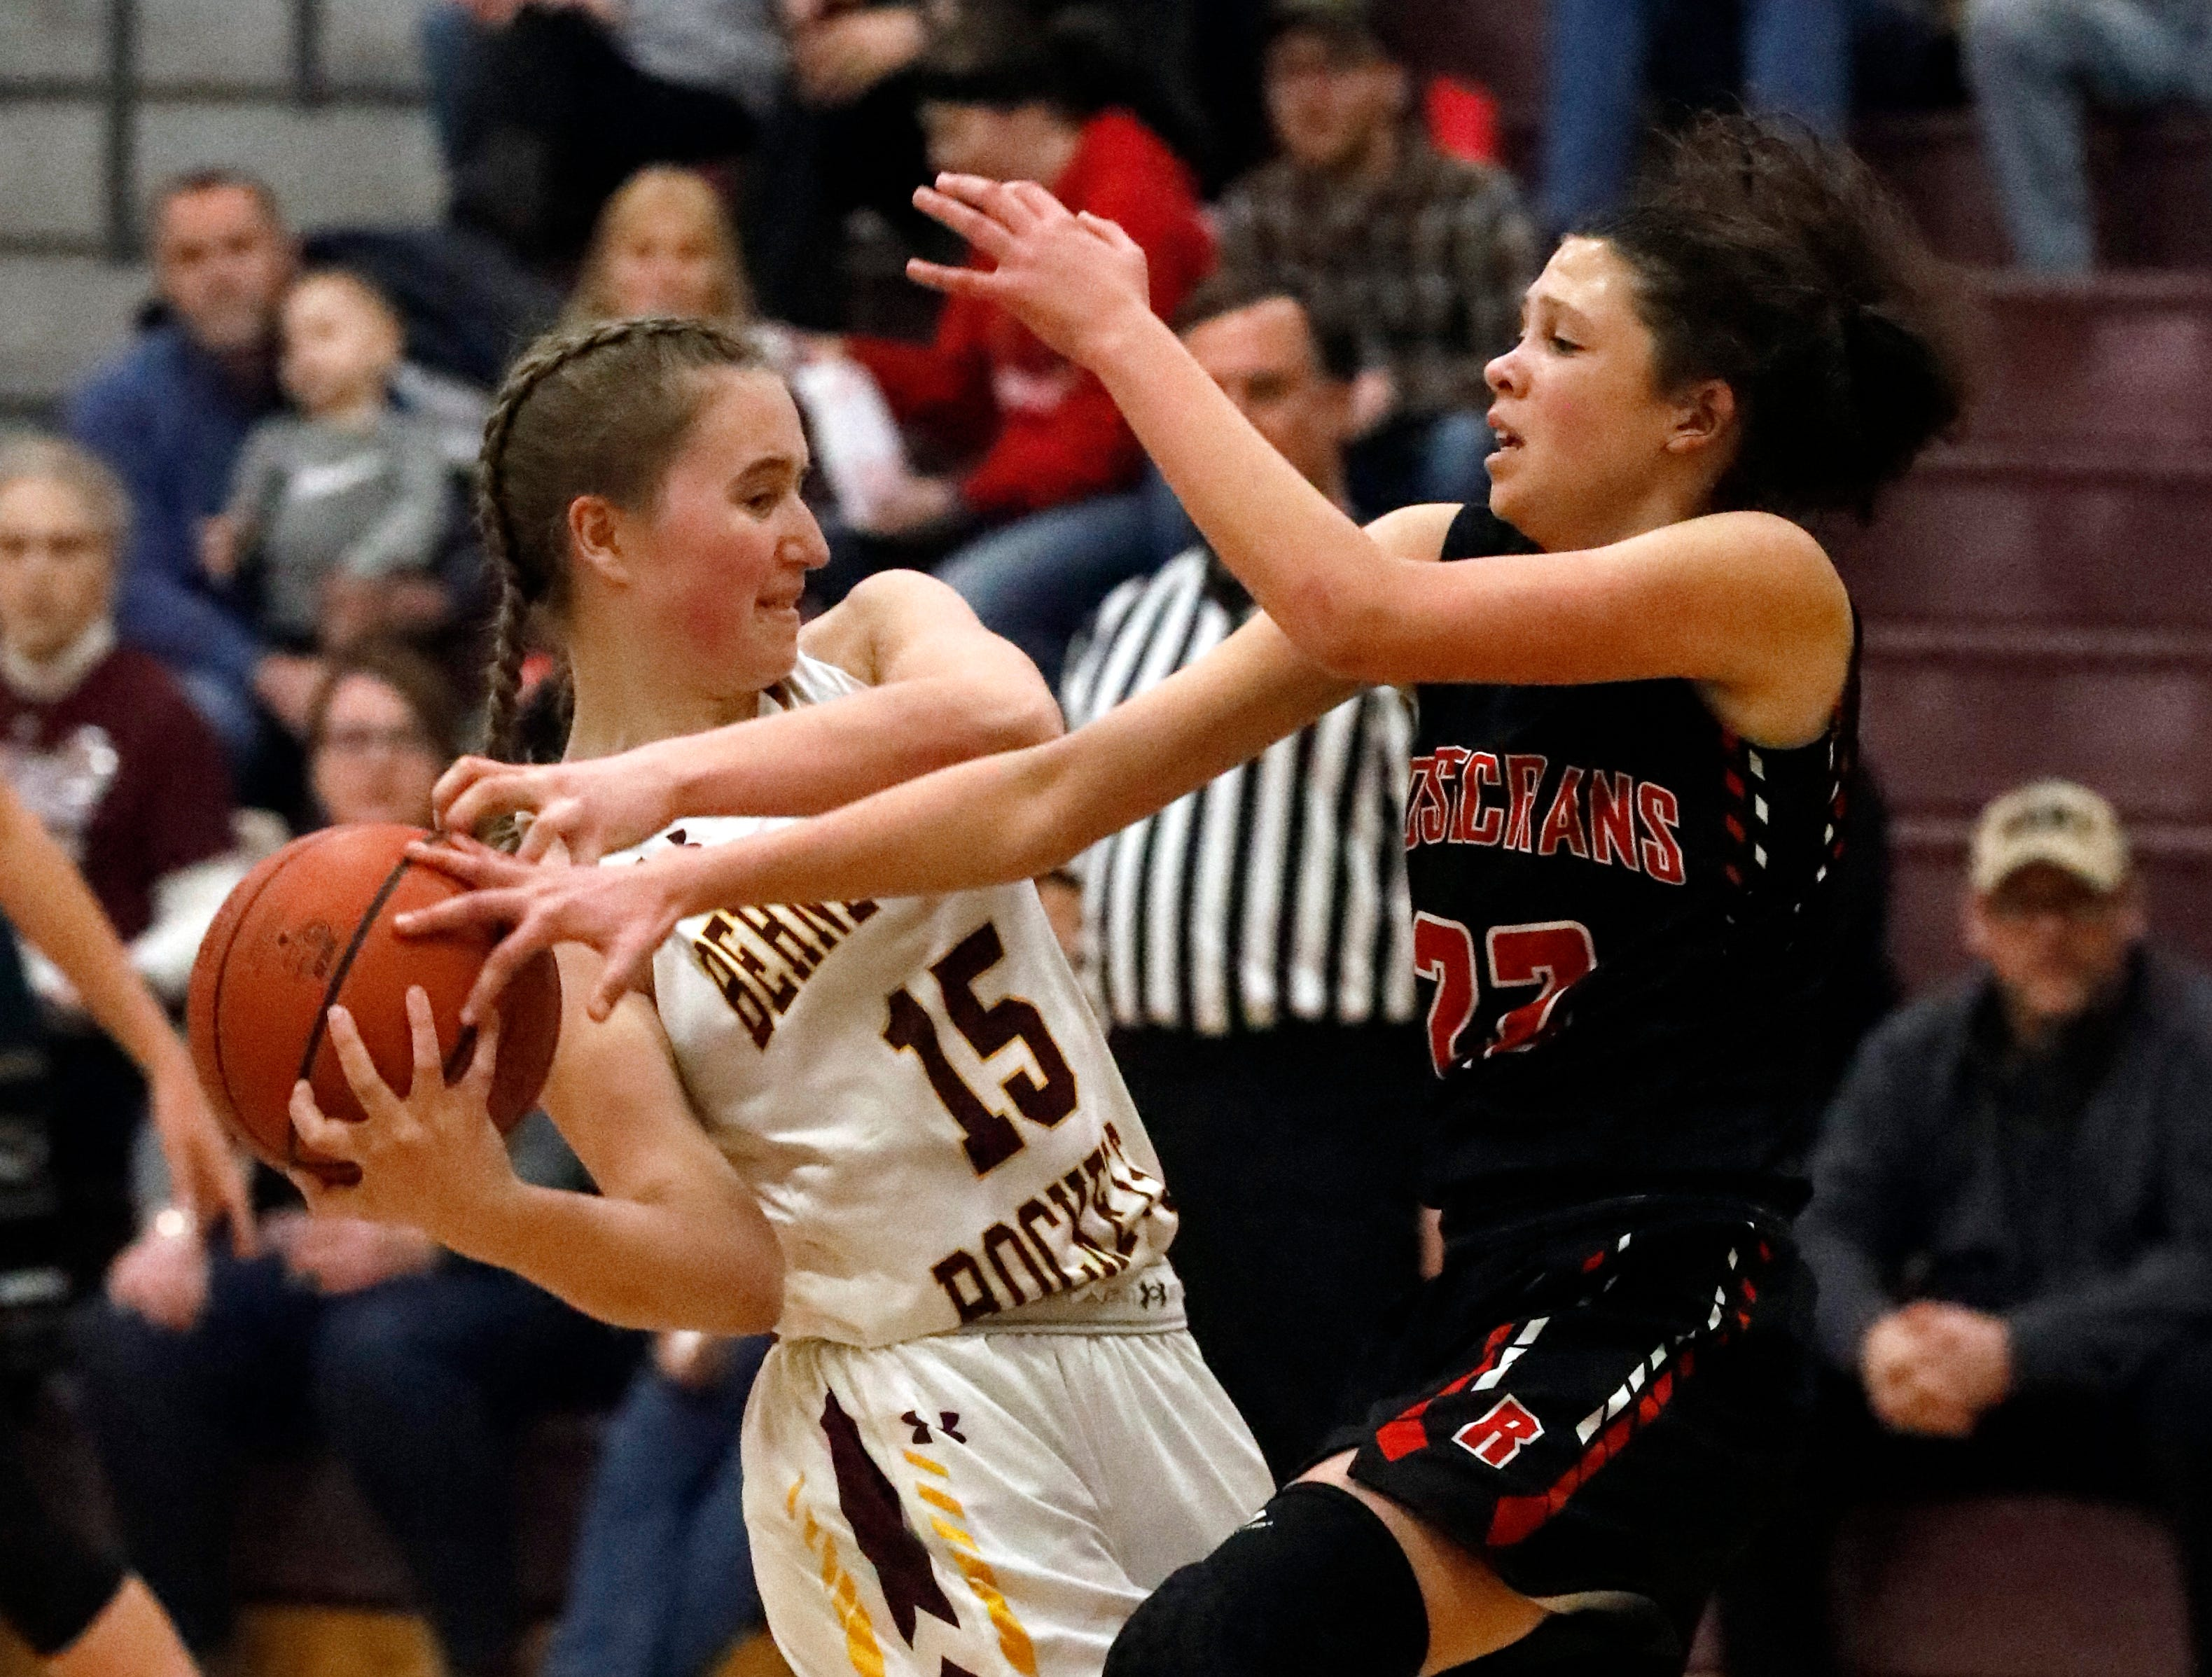 Berne Union's Emily Blevins tries to keep the ball away from Bishop Rosecrans' Jenna Carlisle during Friday night's game, Feb. 8, 2019, at Berne Union High School in Sugar Grove. The Rockets lost the game 46-43.